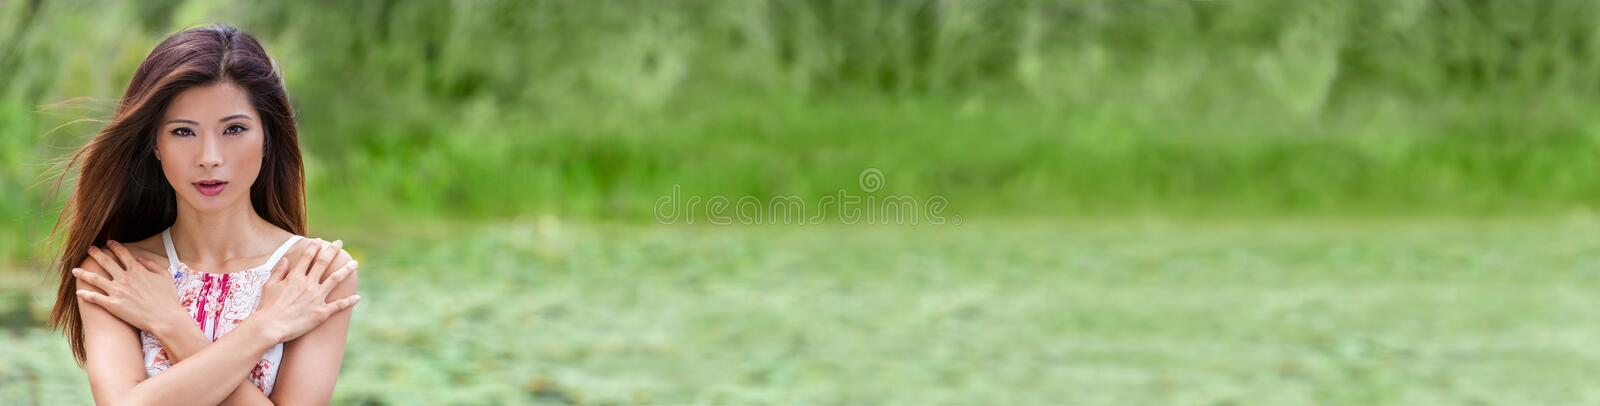 Panorama Chinese Asian Young Woman Girl Outdoors Natural Green Web Banner royalty free stock photography